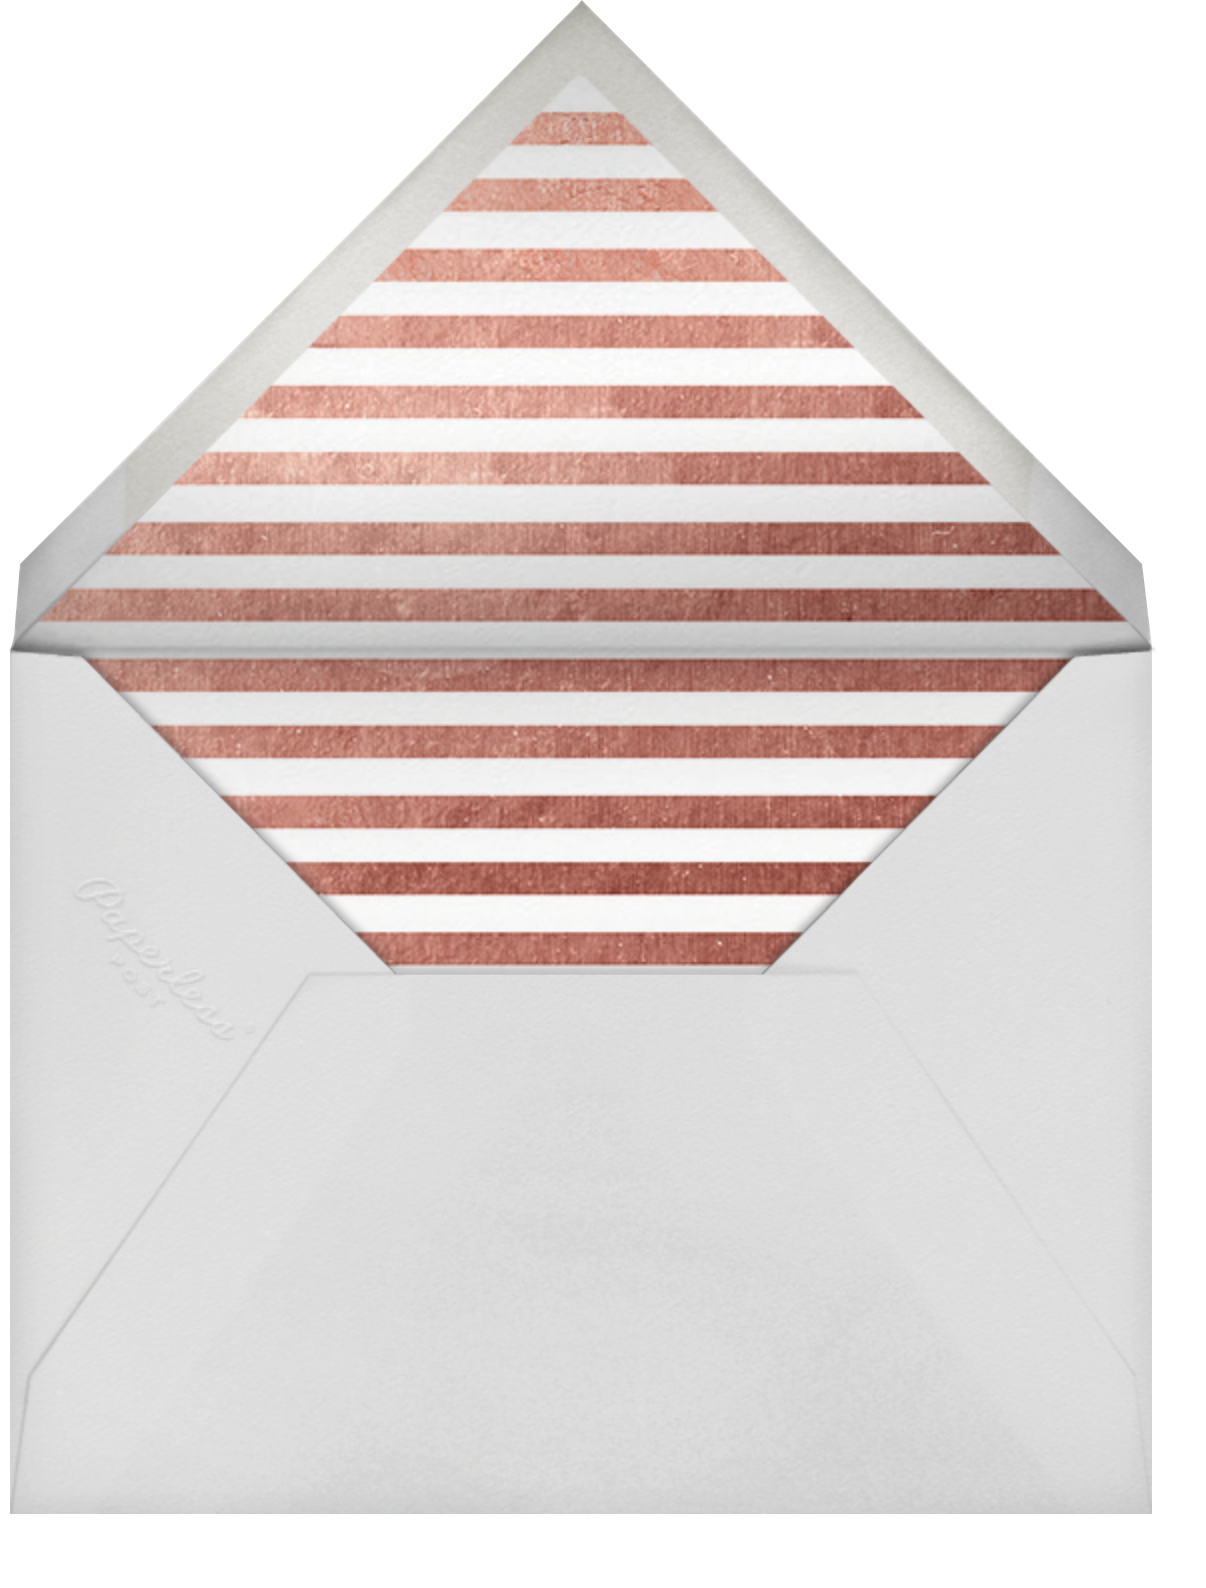 Person of the Year (Photo Invitation) - Rose Gold - Paperless Post - Envelope